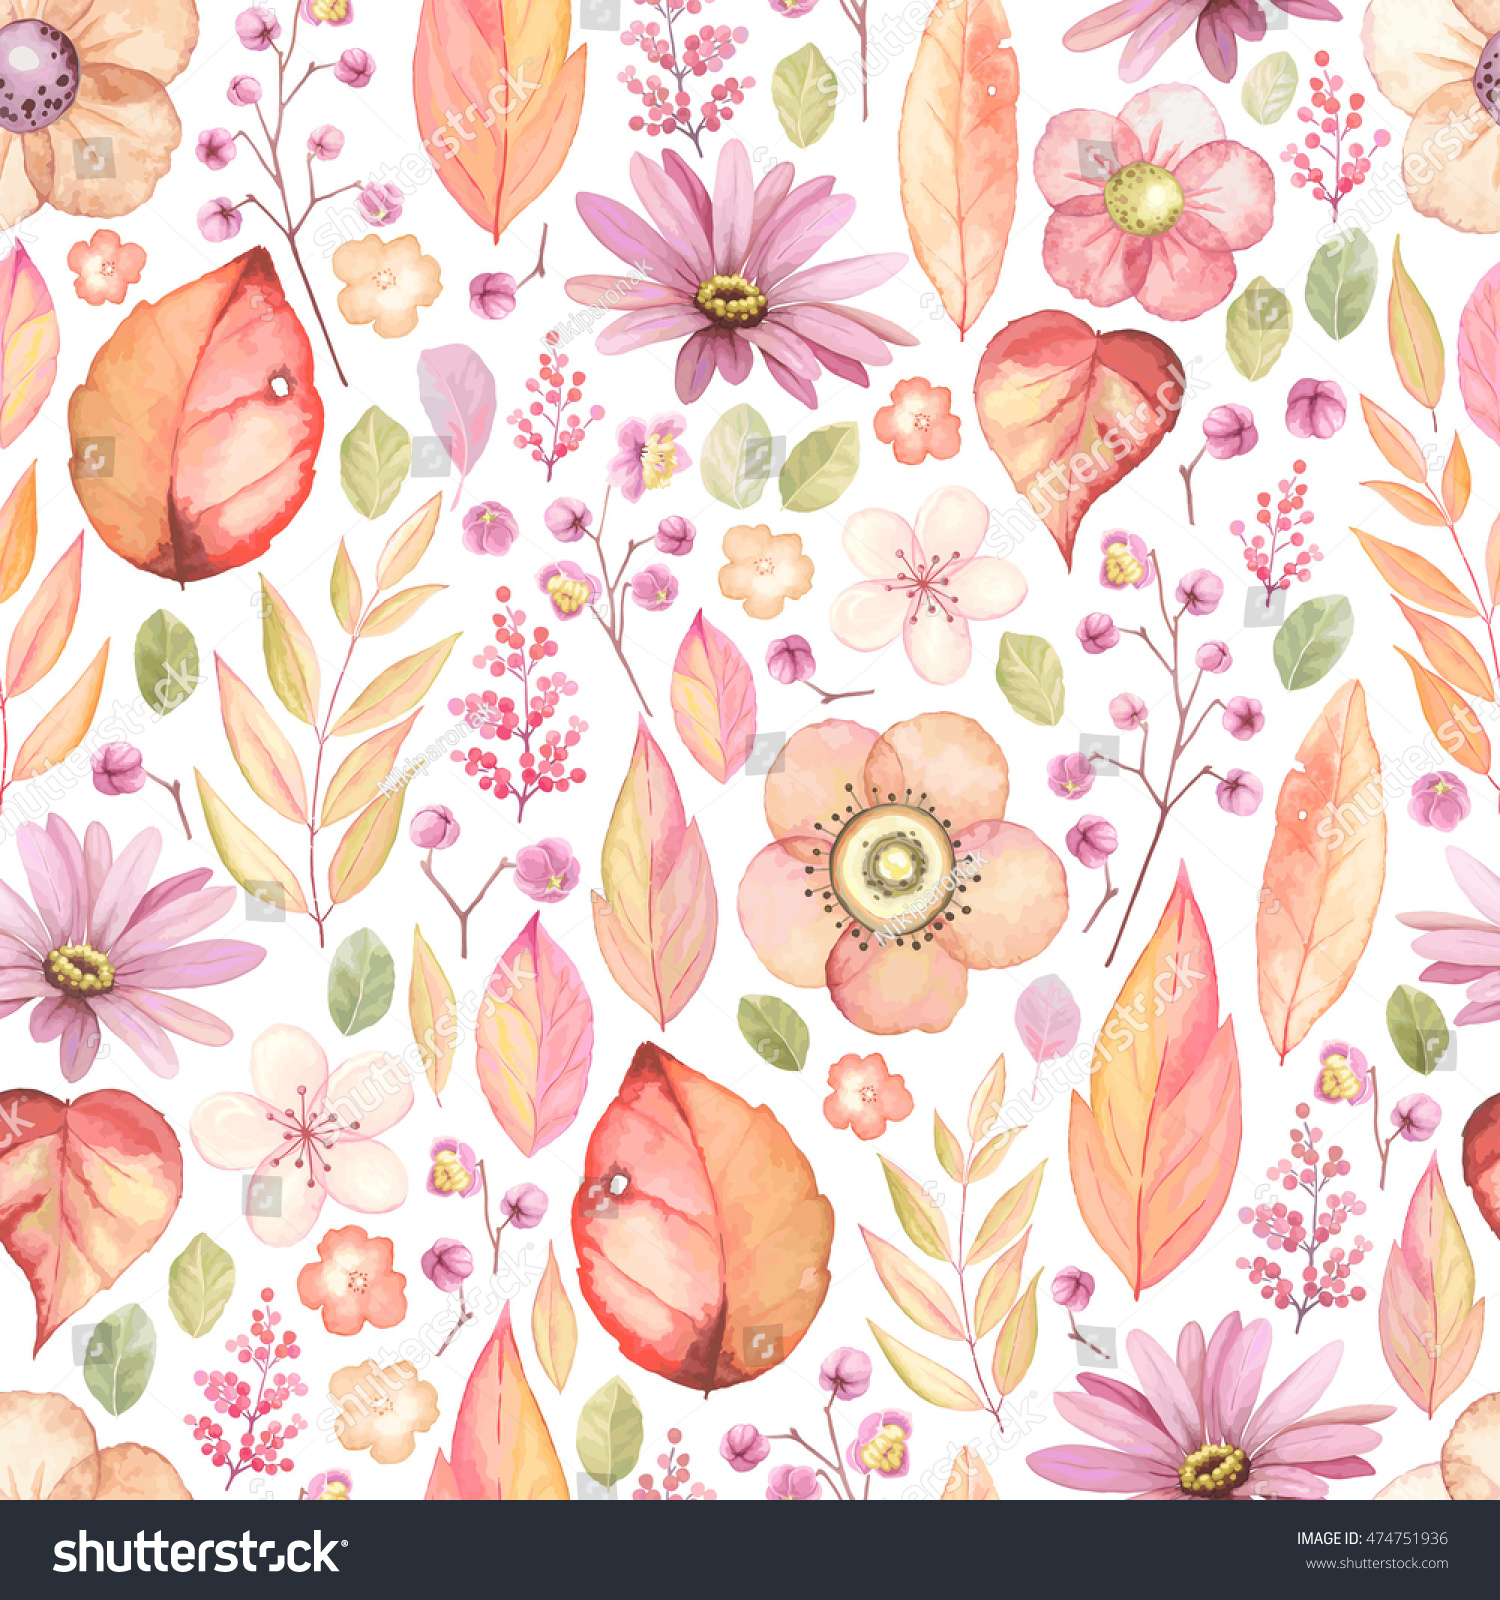 Rustic Floral Pattern Flowers Leaves Branches Stock Vector